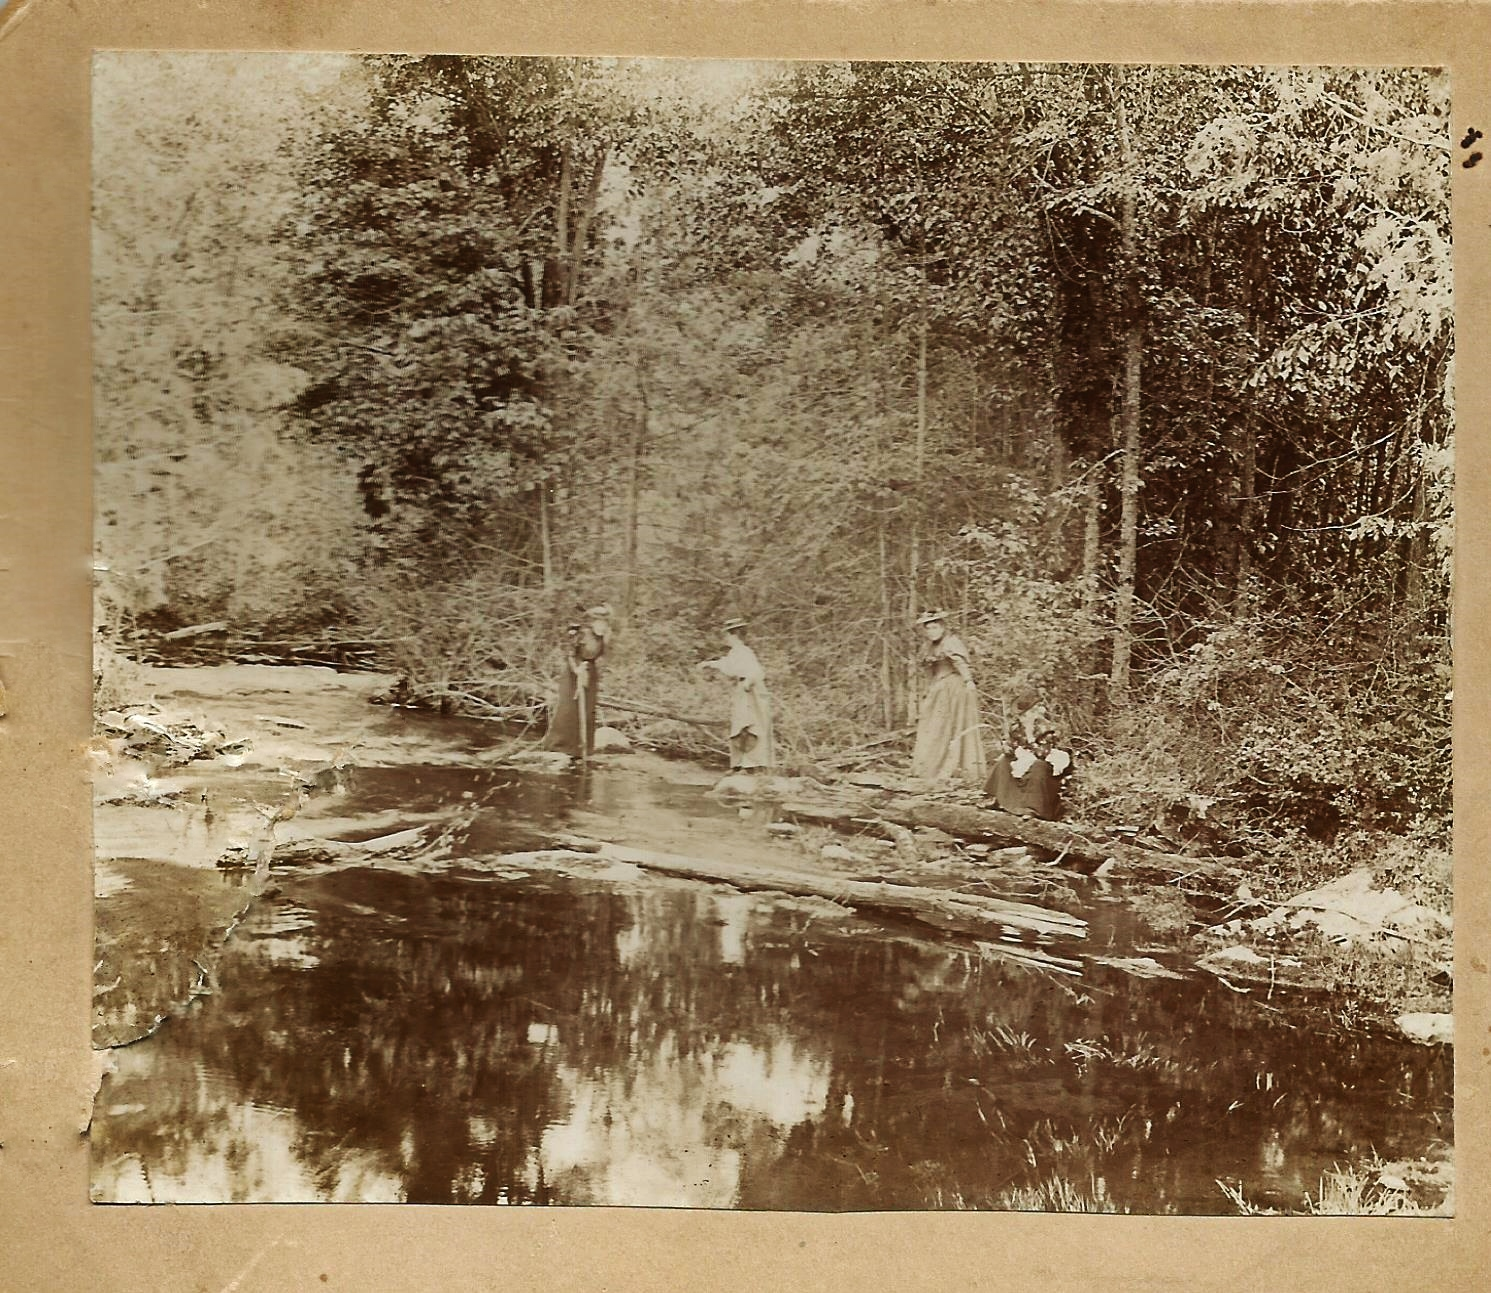 1897 Rawdon Creek, near Orchard Farms,Wellman's  Corners.., Emily Parker, Lou Judd, Julia Pearce, Jane Pearce. Vandervoort